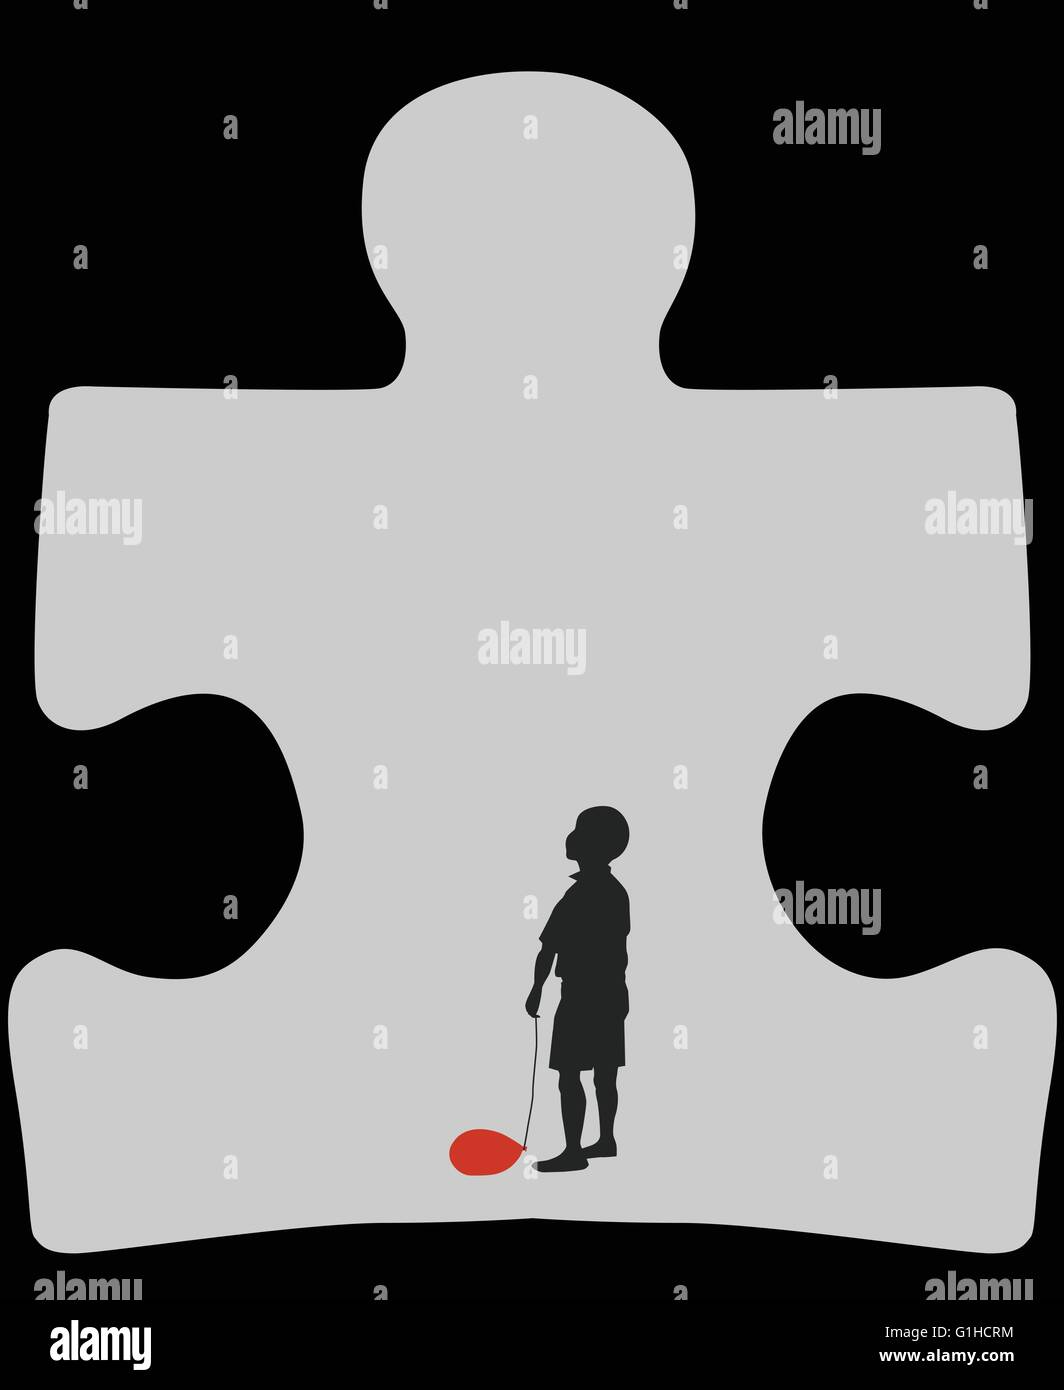 Autism cave silhouette of autistic child with a deflated red air autism cave silhouette of autistic child with a deflated red air balloon standing in a cave in a shape of a symbol for autism biocorpaavc Gallery